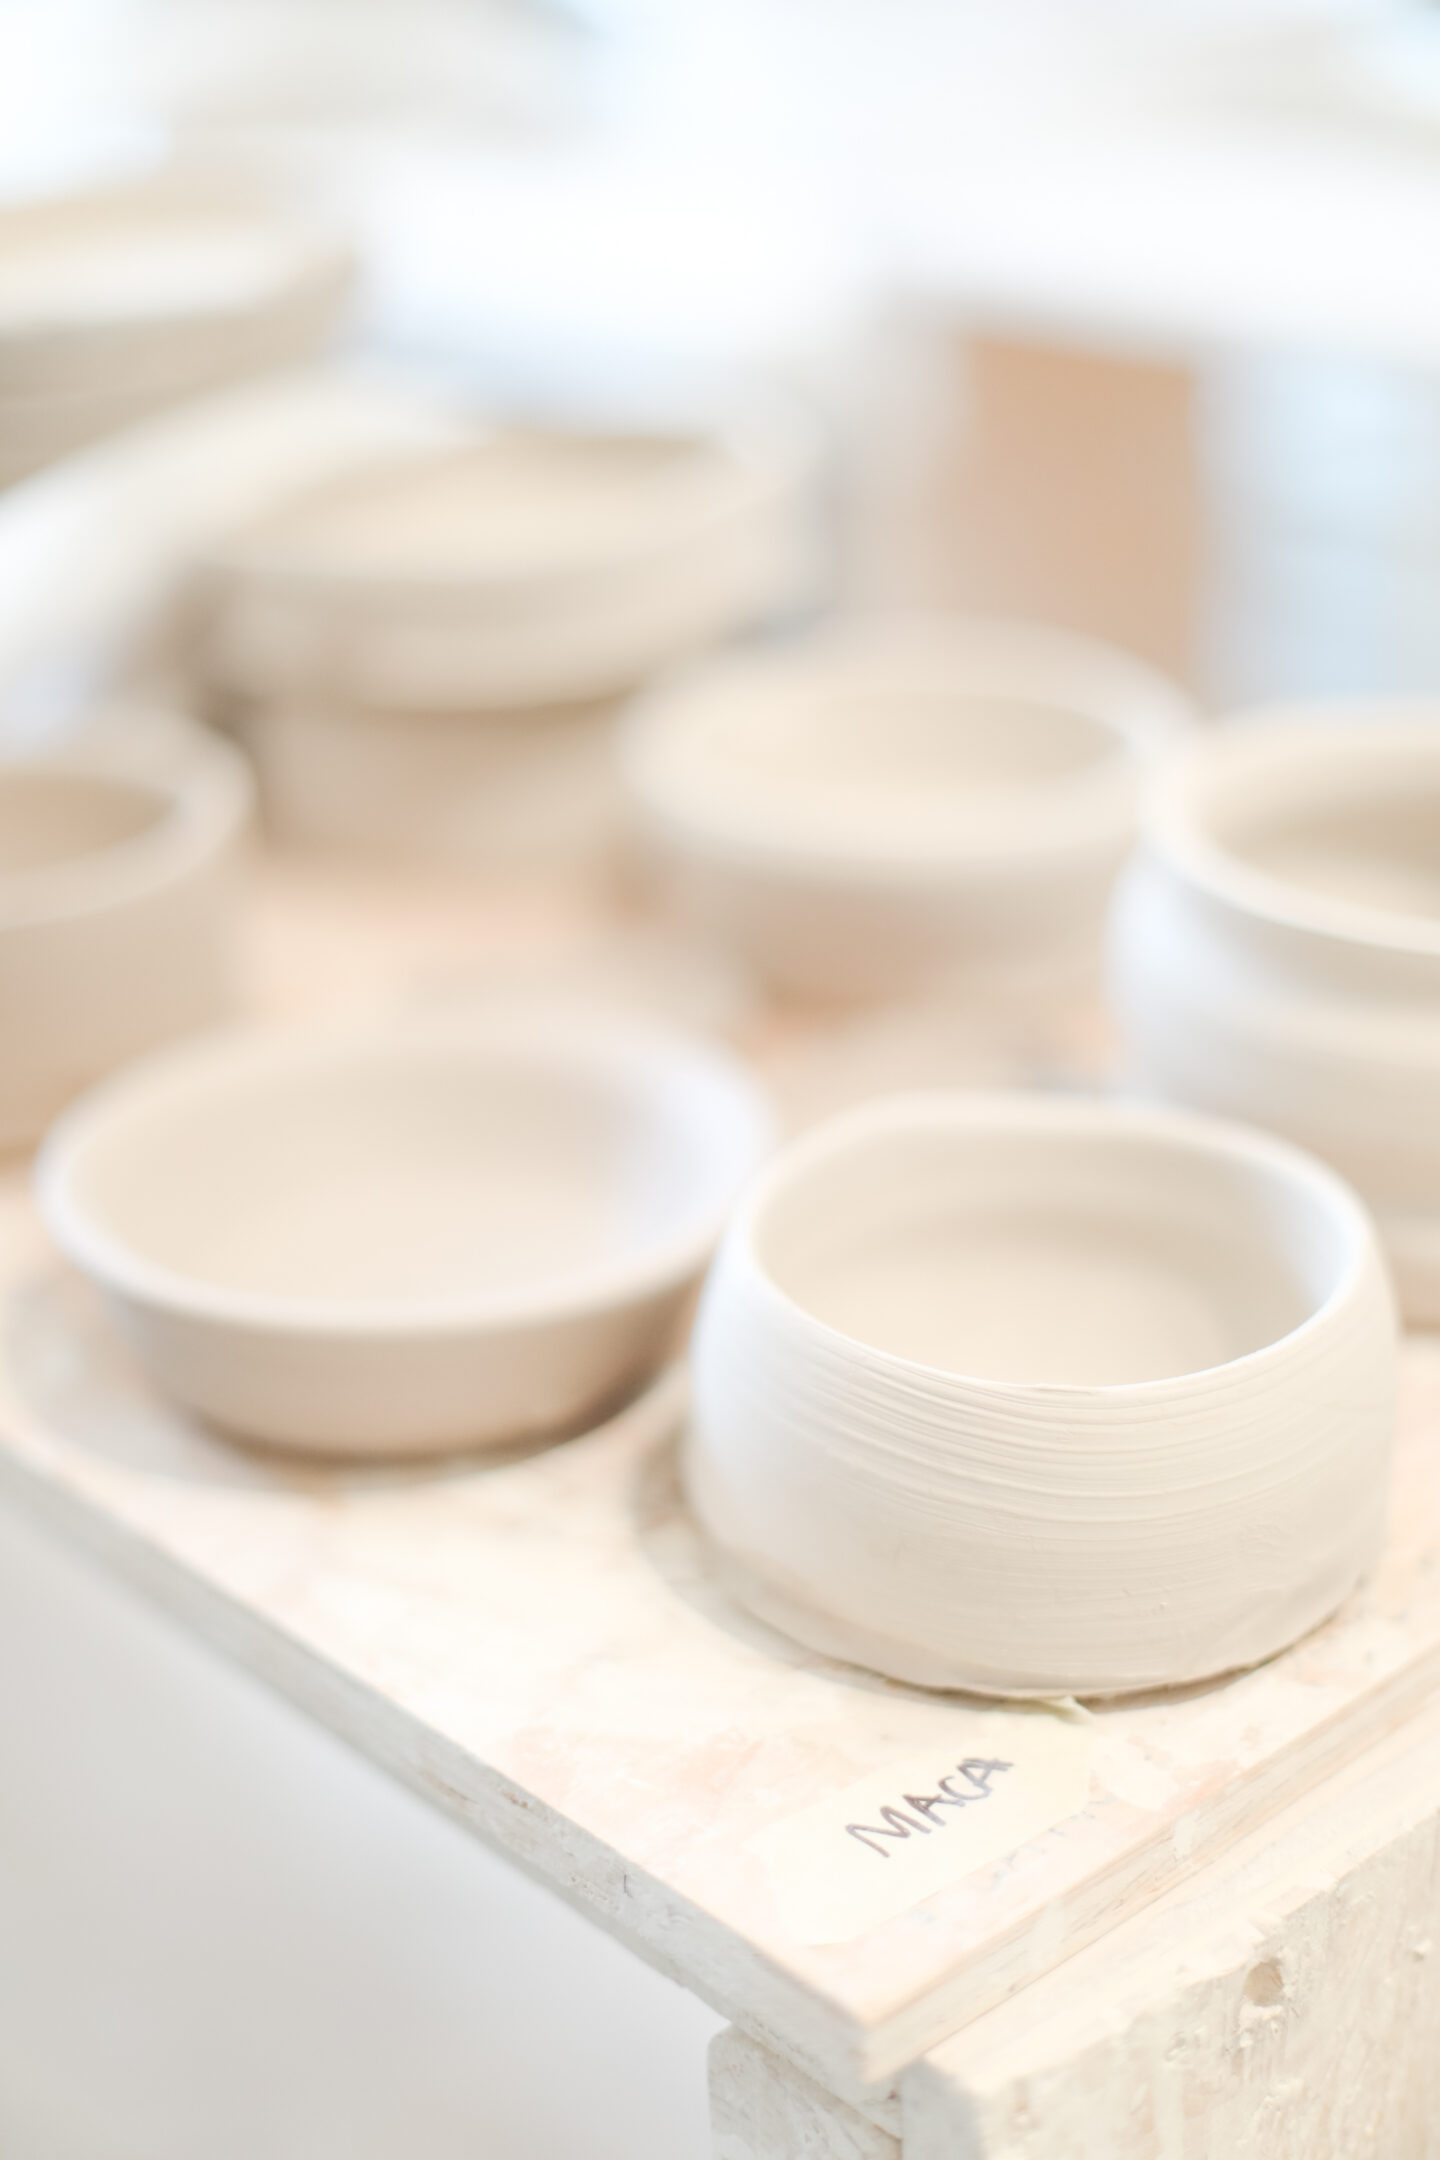 Pottery essential tips